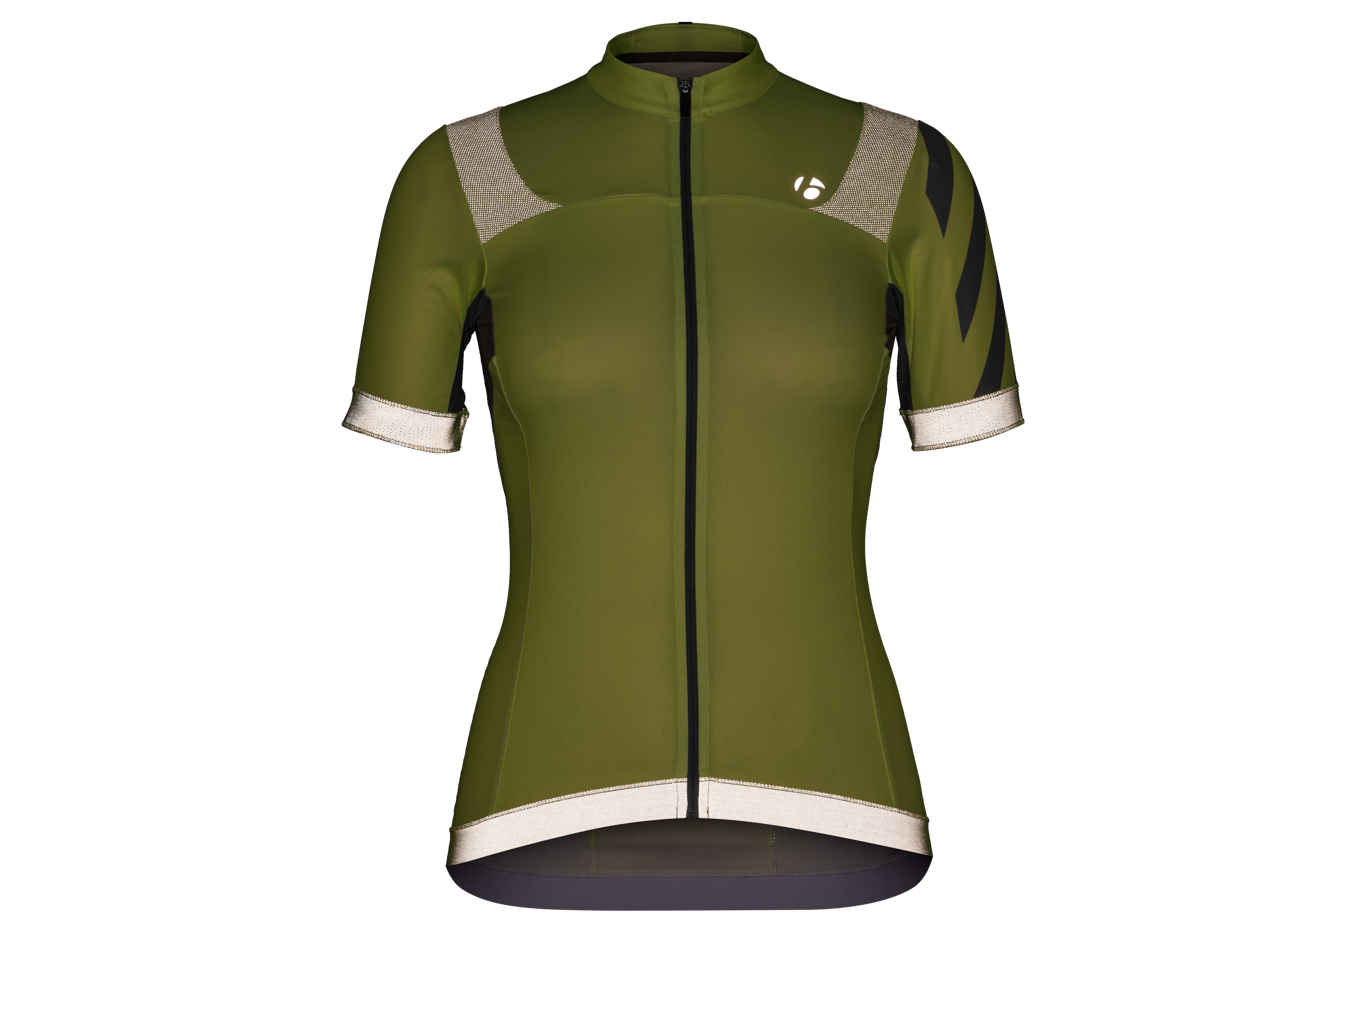 Bontrager Meraj Halo Women s Cycling Jersey. Overview  Tech specs  Sizing    fit  Reviews  FAQs  Buy. Prev. Next ca7c1f474